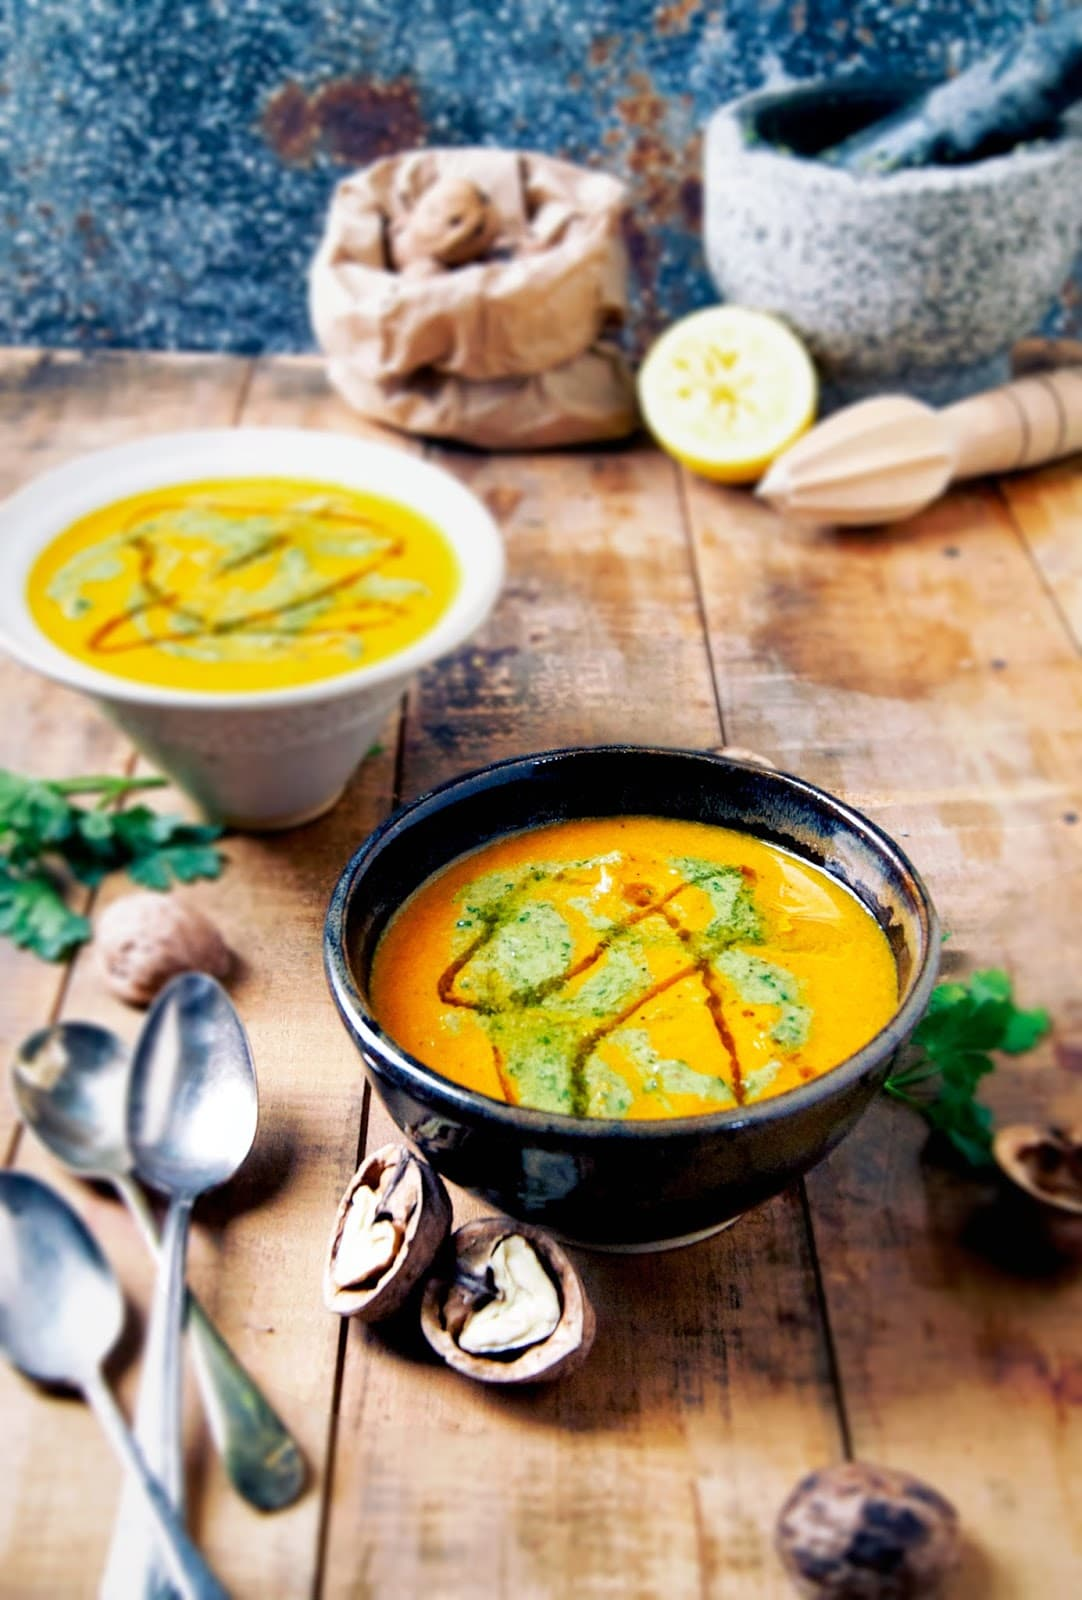 Dairy free vegetarian recipes from Occassionally Eggs- roasted carrot soup with parsley walnut pesto